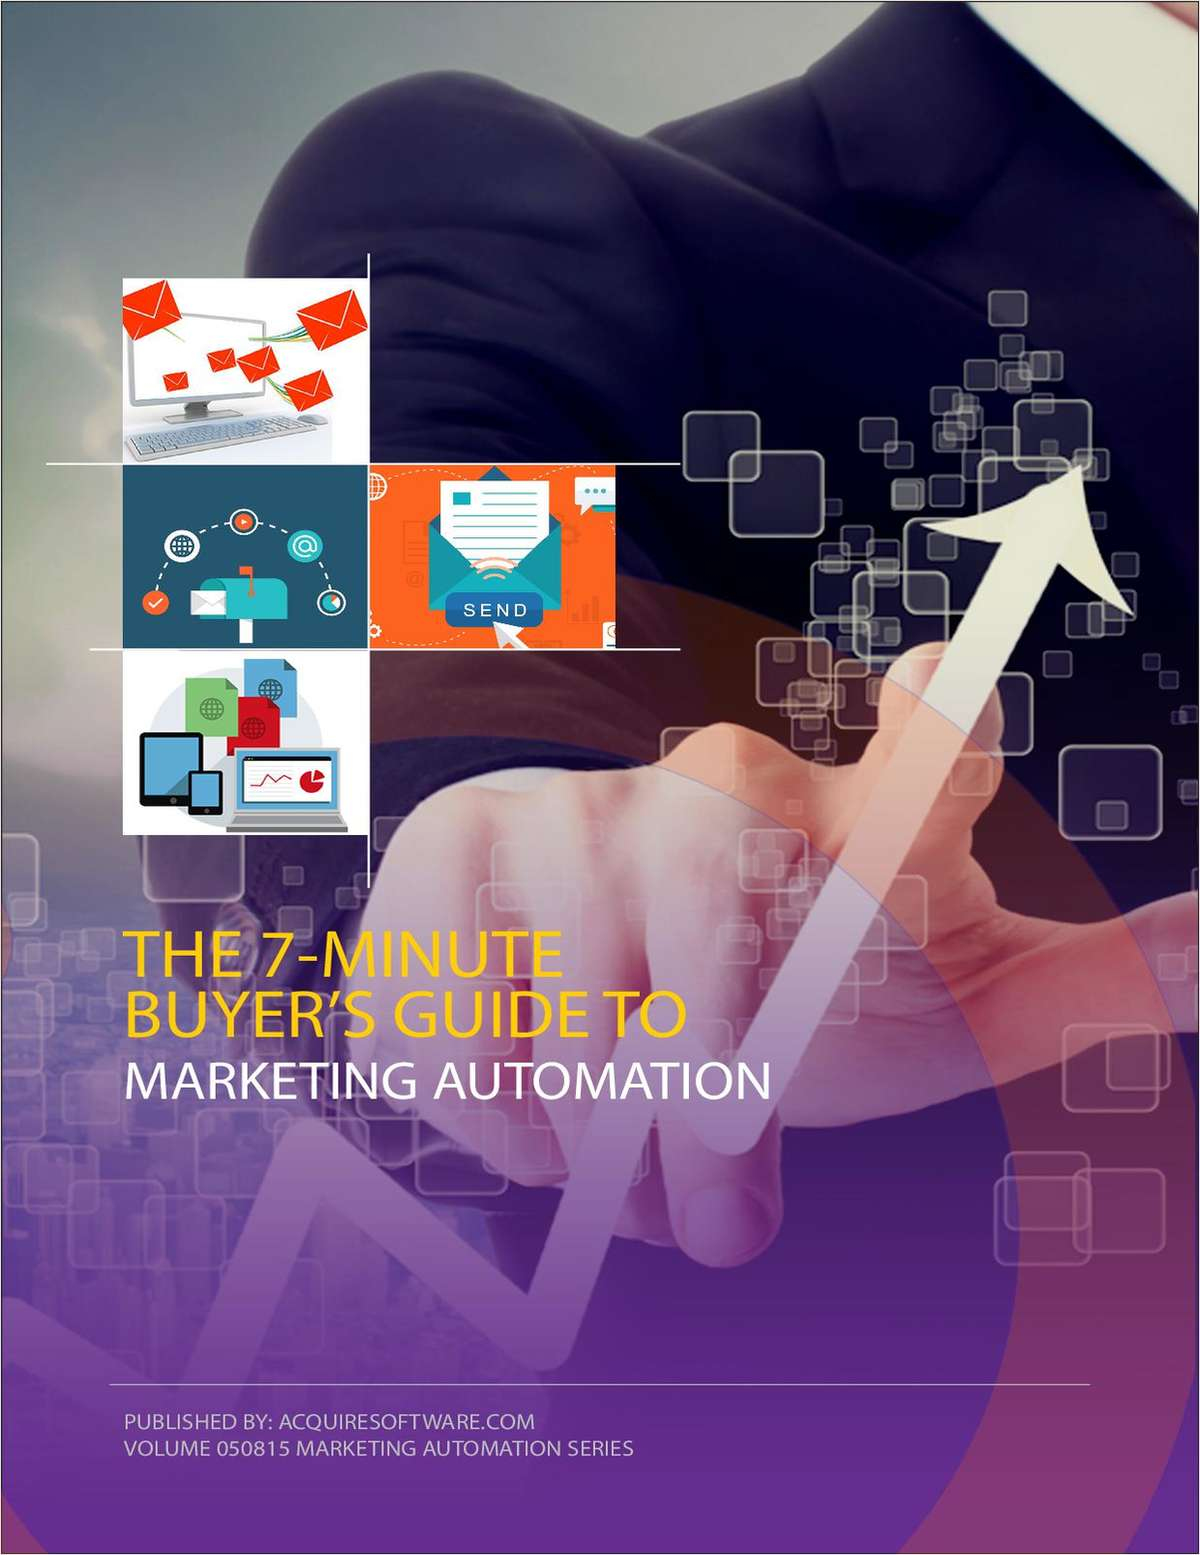 7-Minute Buyer's Guide: Selecting the Right Marketing Automation Platform for Your Company